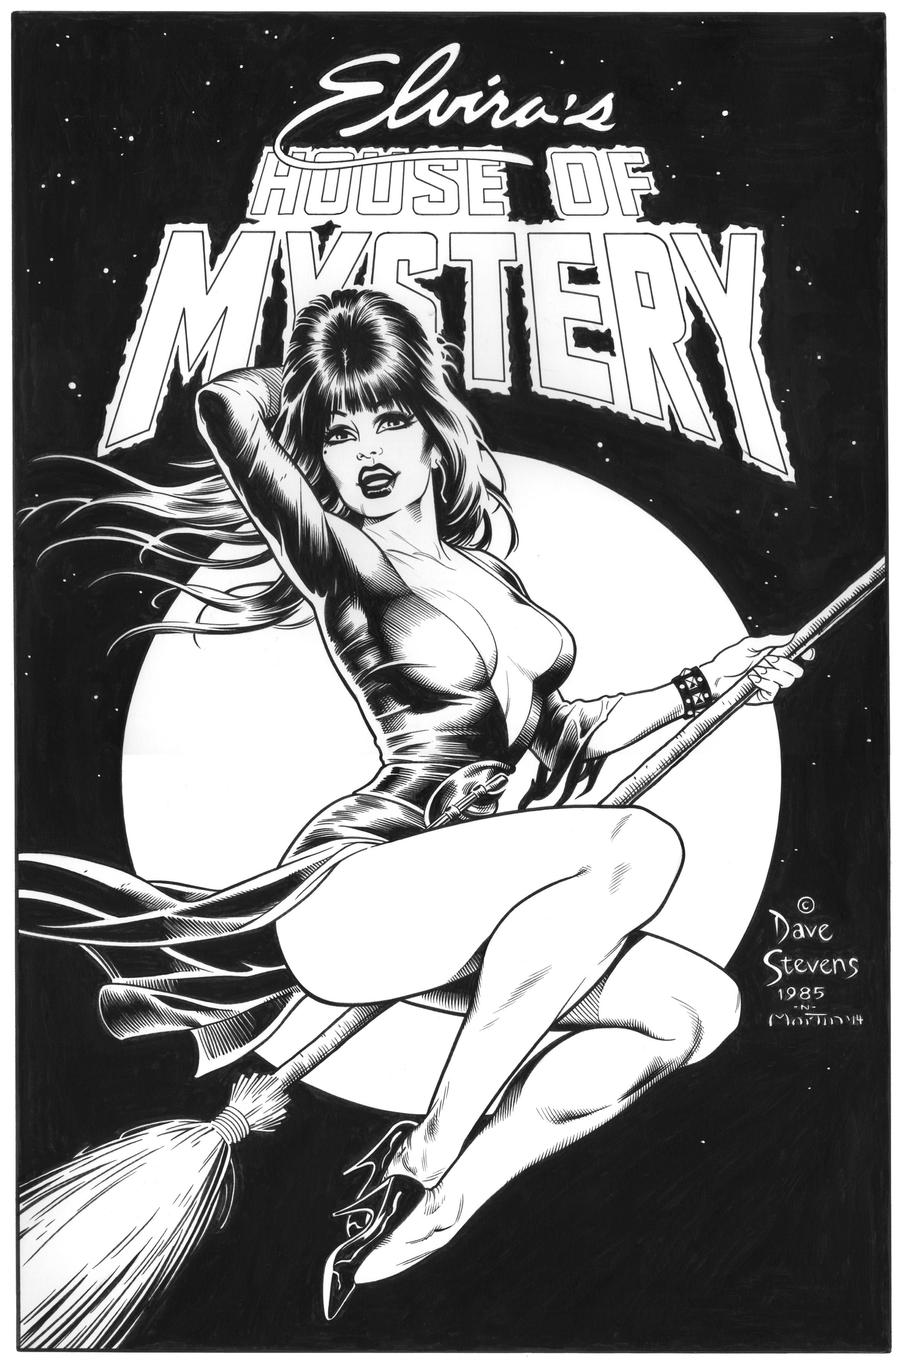 Dave Stevens Elvira cover recreation by SKY-BOY